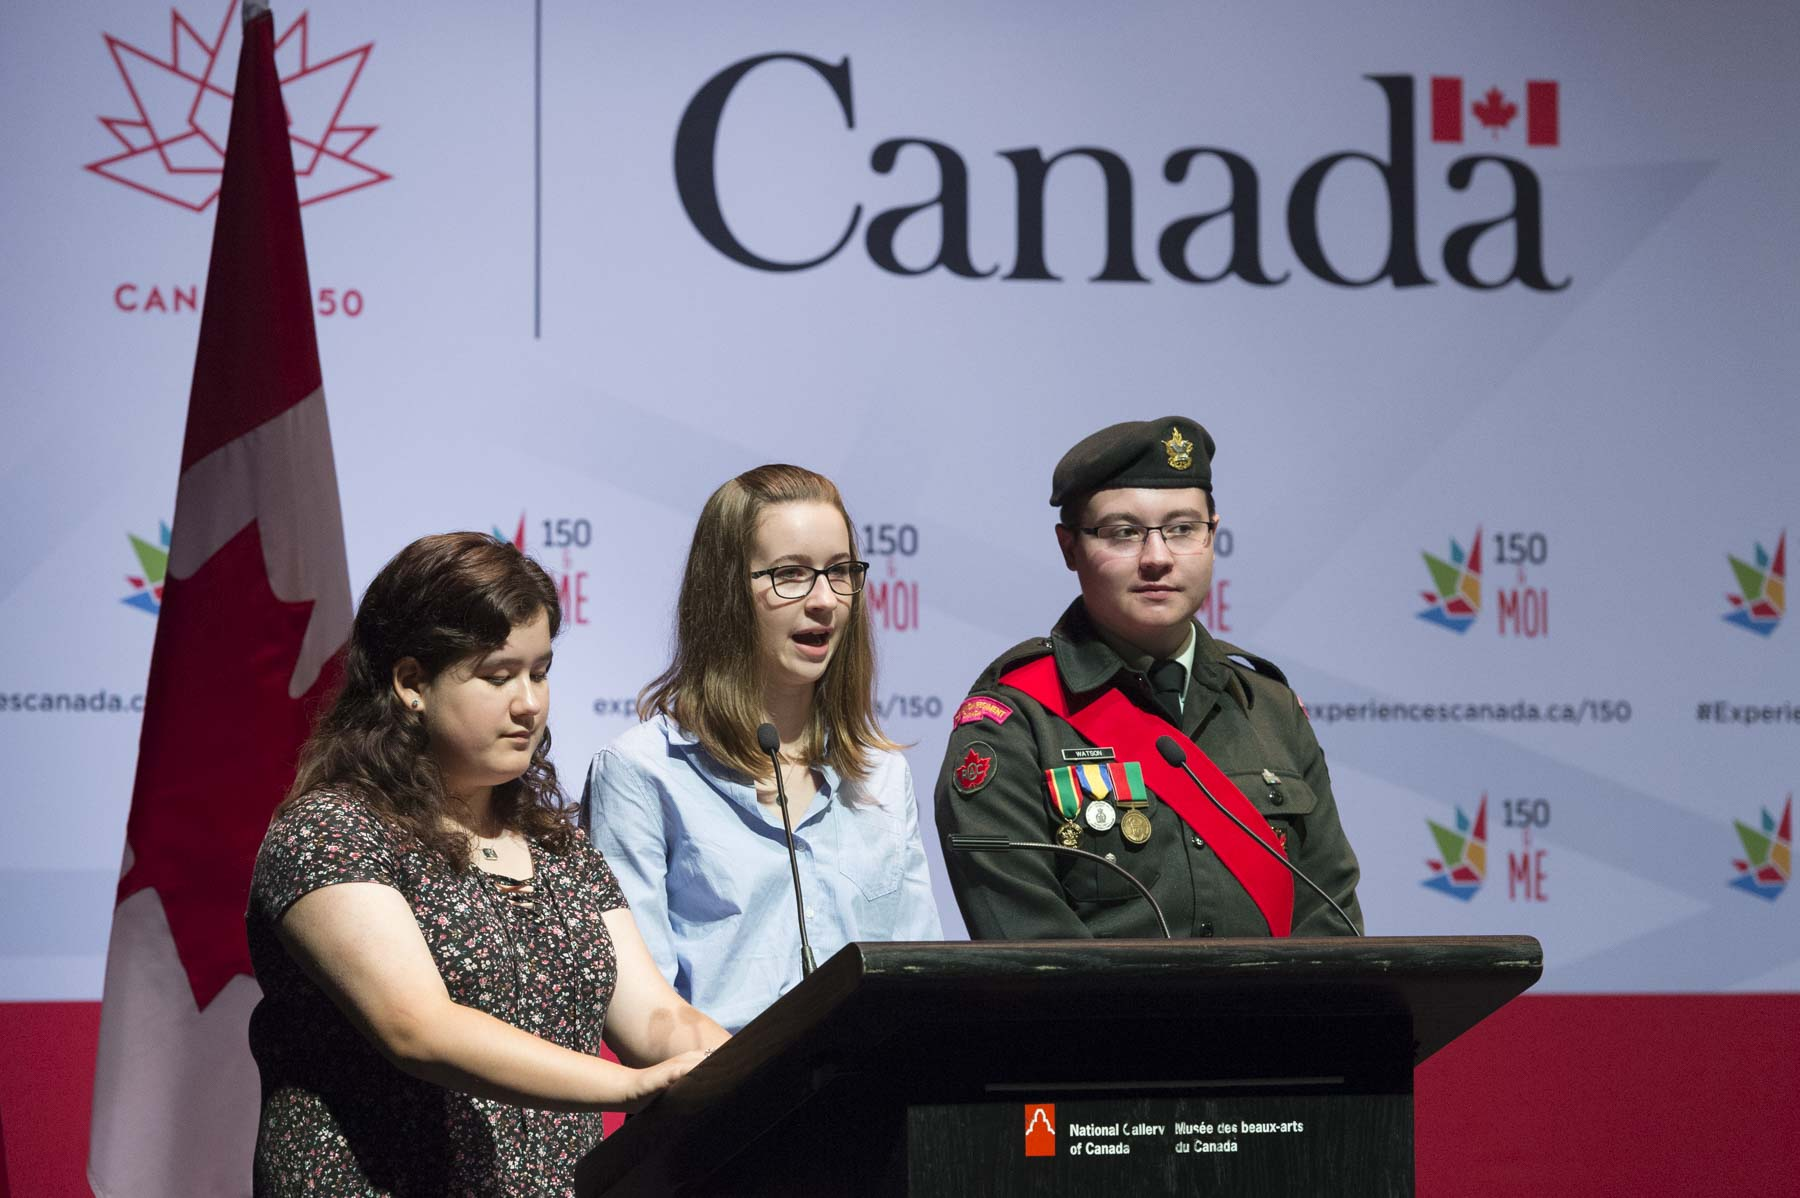 The Governor General attended Canada150&Me's National Youth Forum at the National Gallery of Canada, in Ottawa.